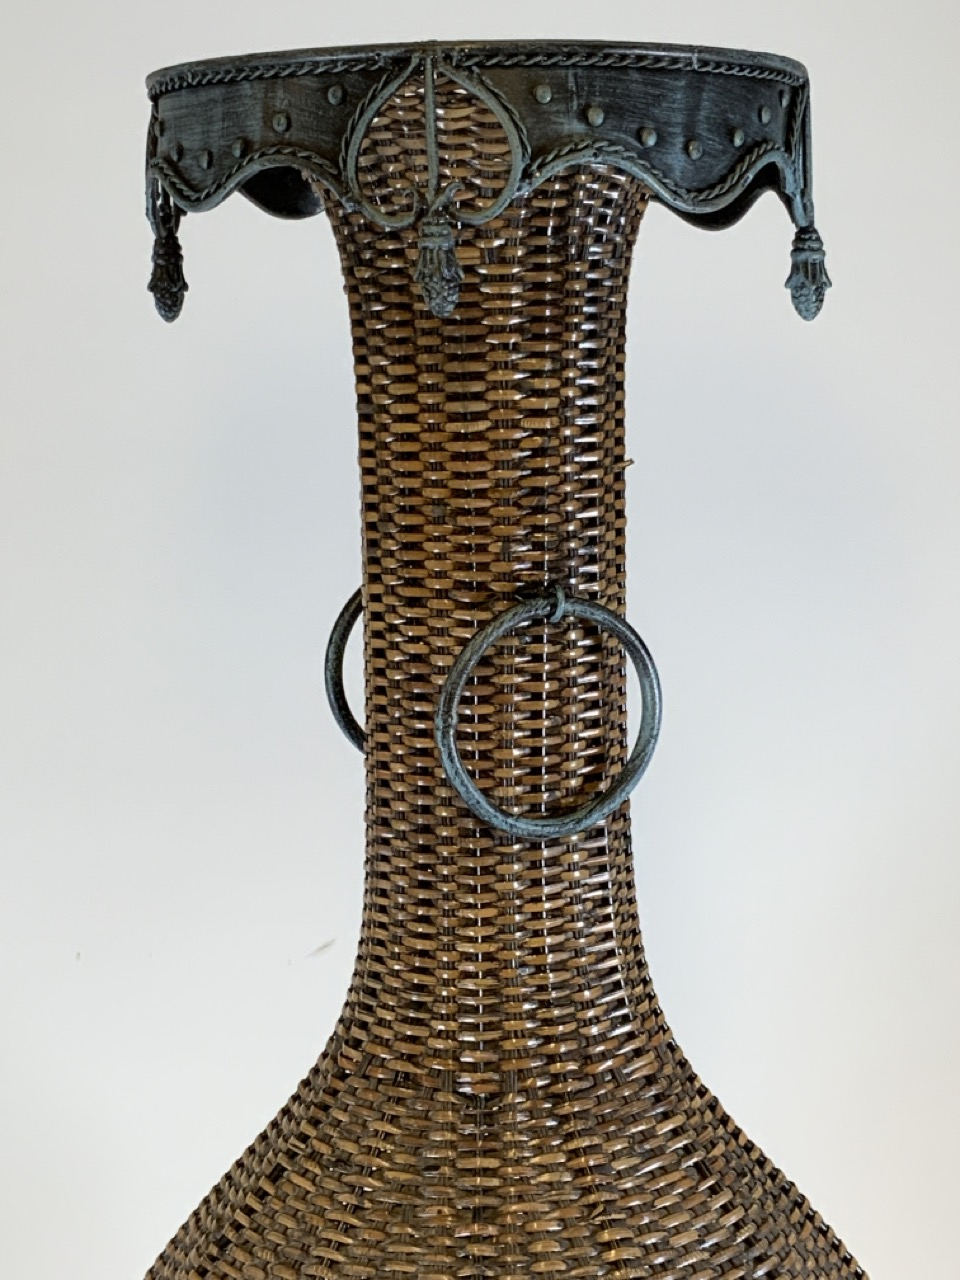 A large wicker conservatory vase in stand with metal hoop handles and decorative metal top. W:24cm x - Image 2 of 5